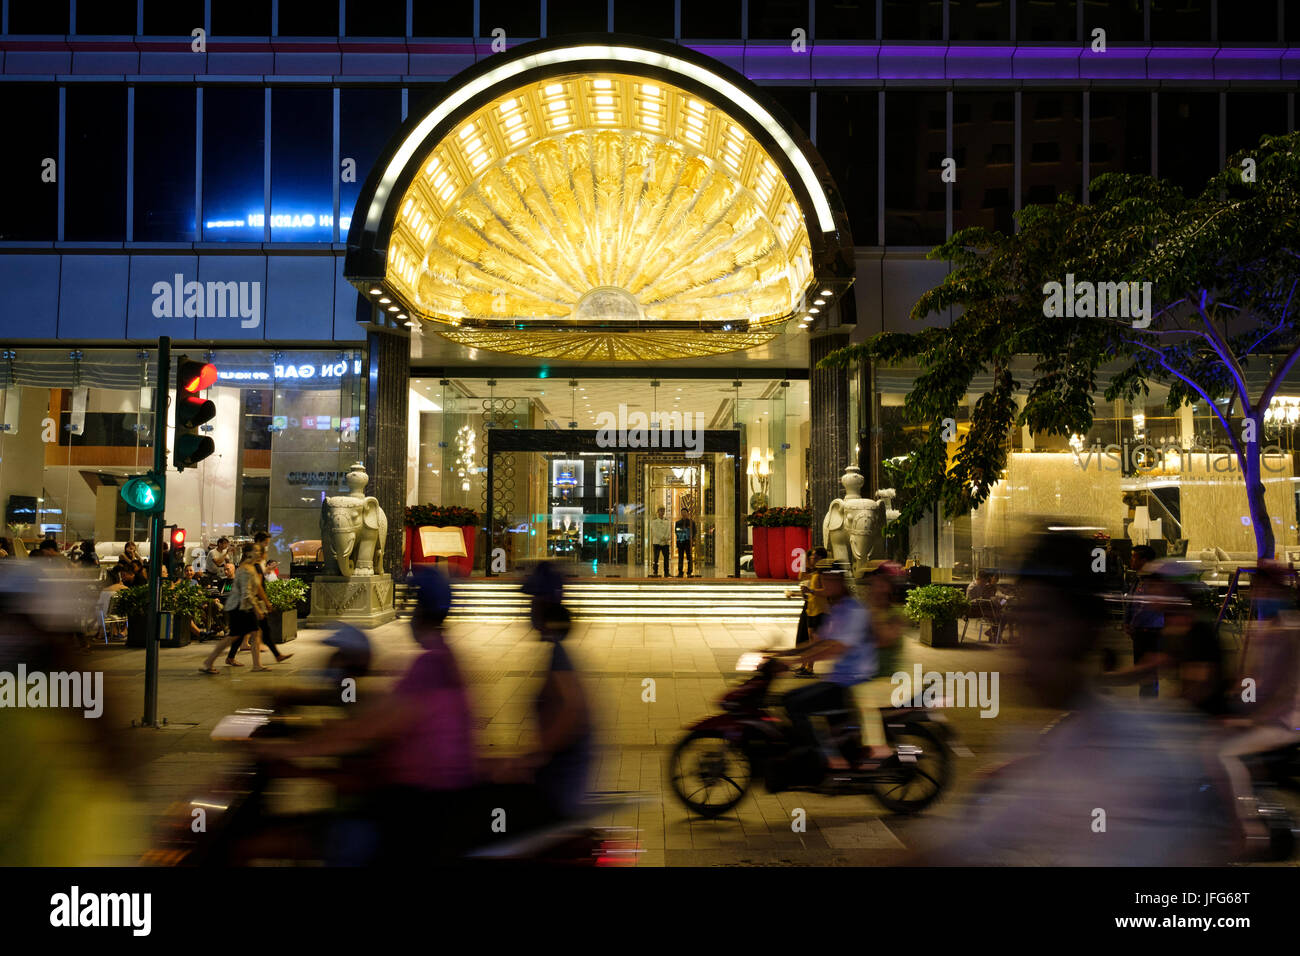 Scooters passing in front of the Reverie Saigon hotel in Ho Chi Minh City, Vietnam, Asia - Stock Image